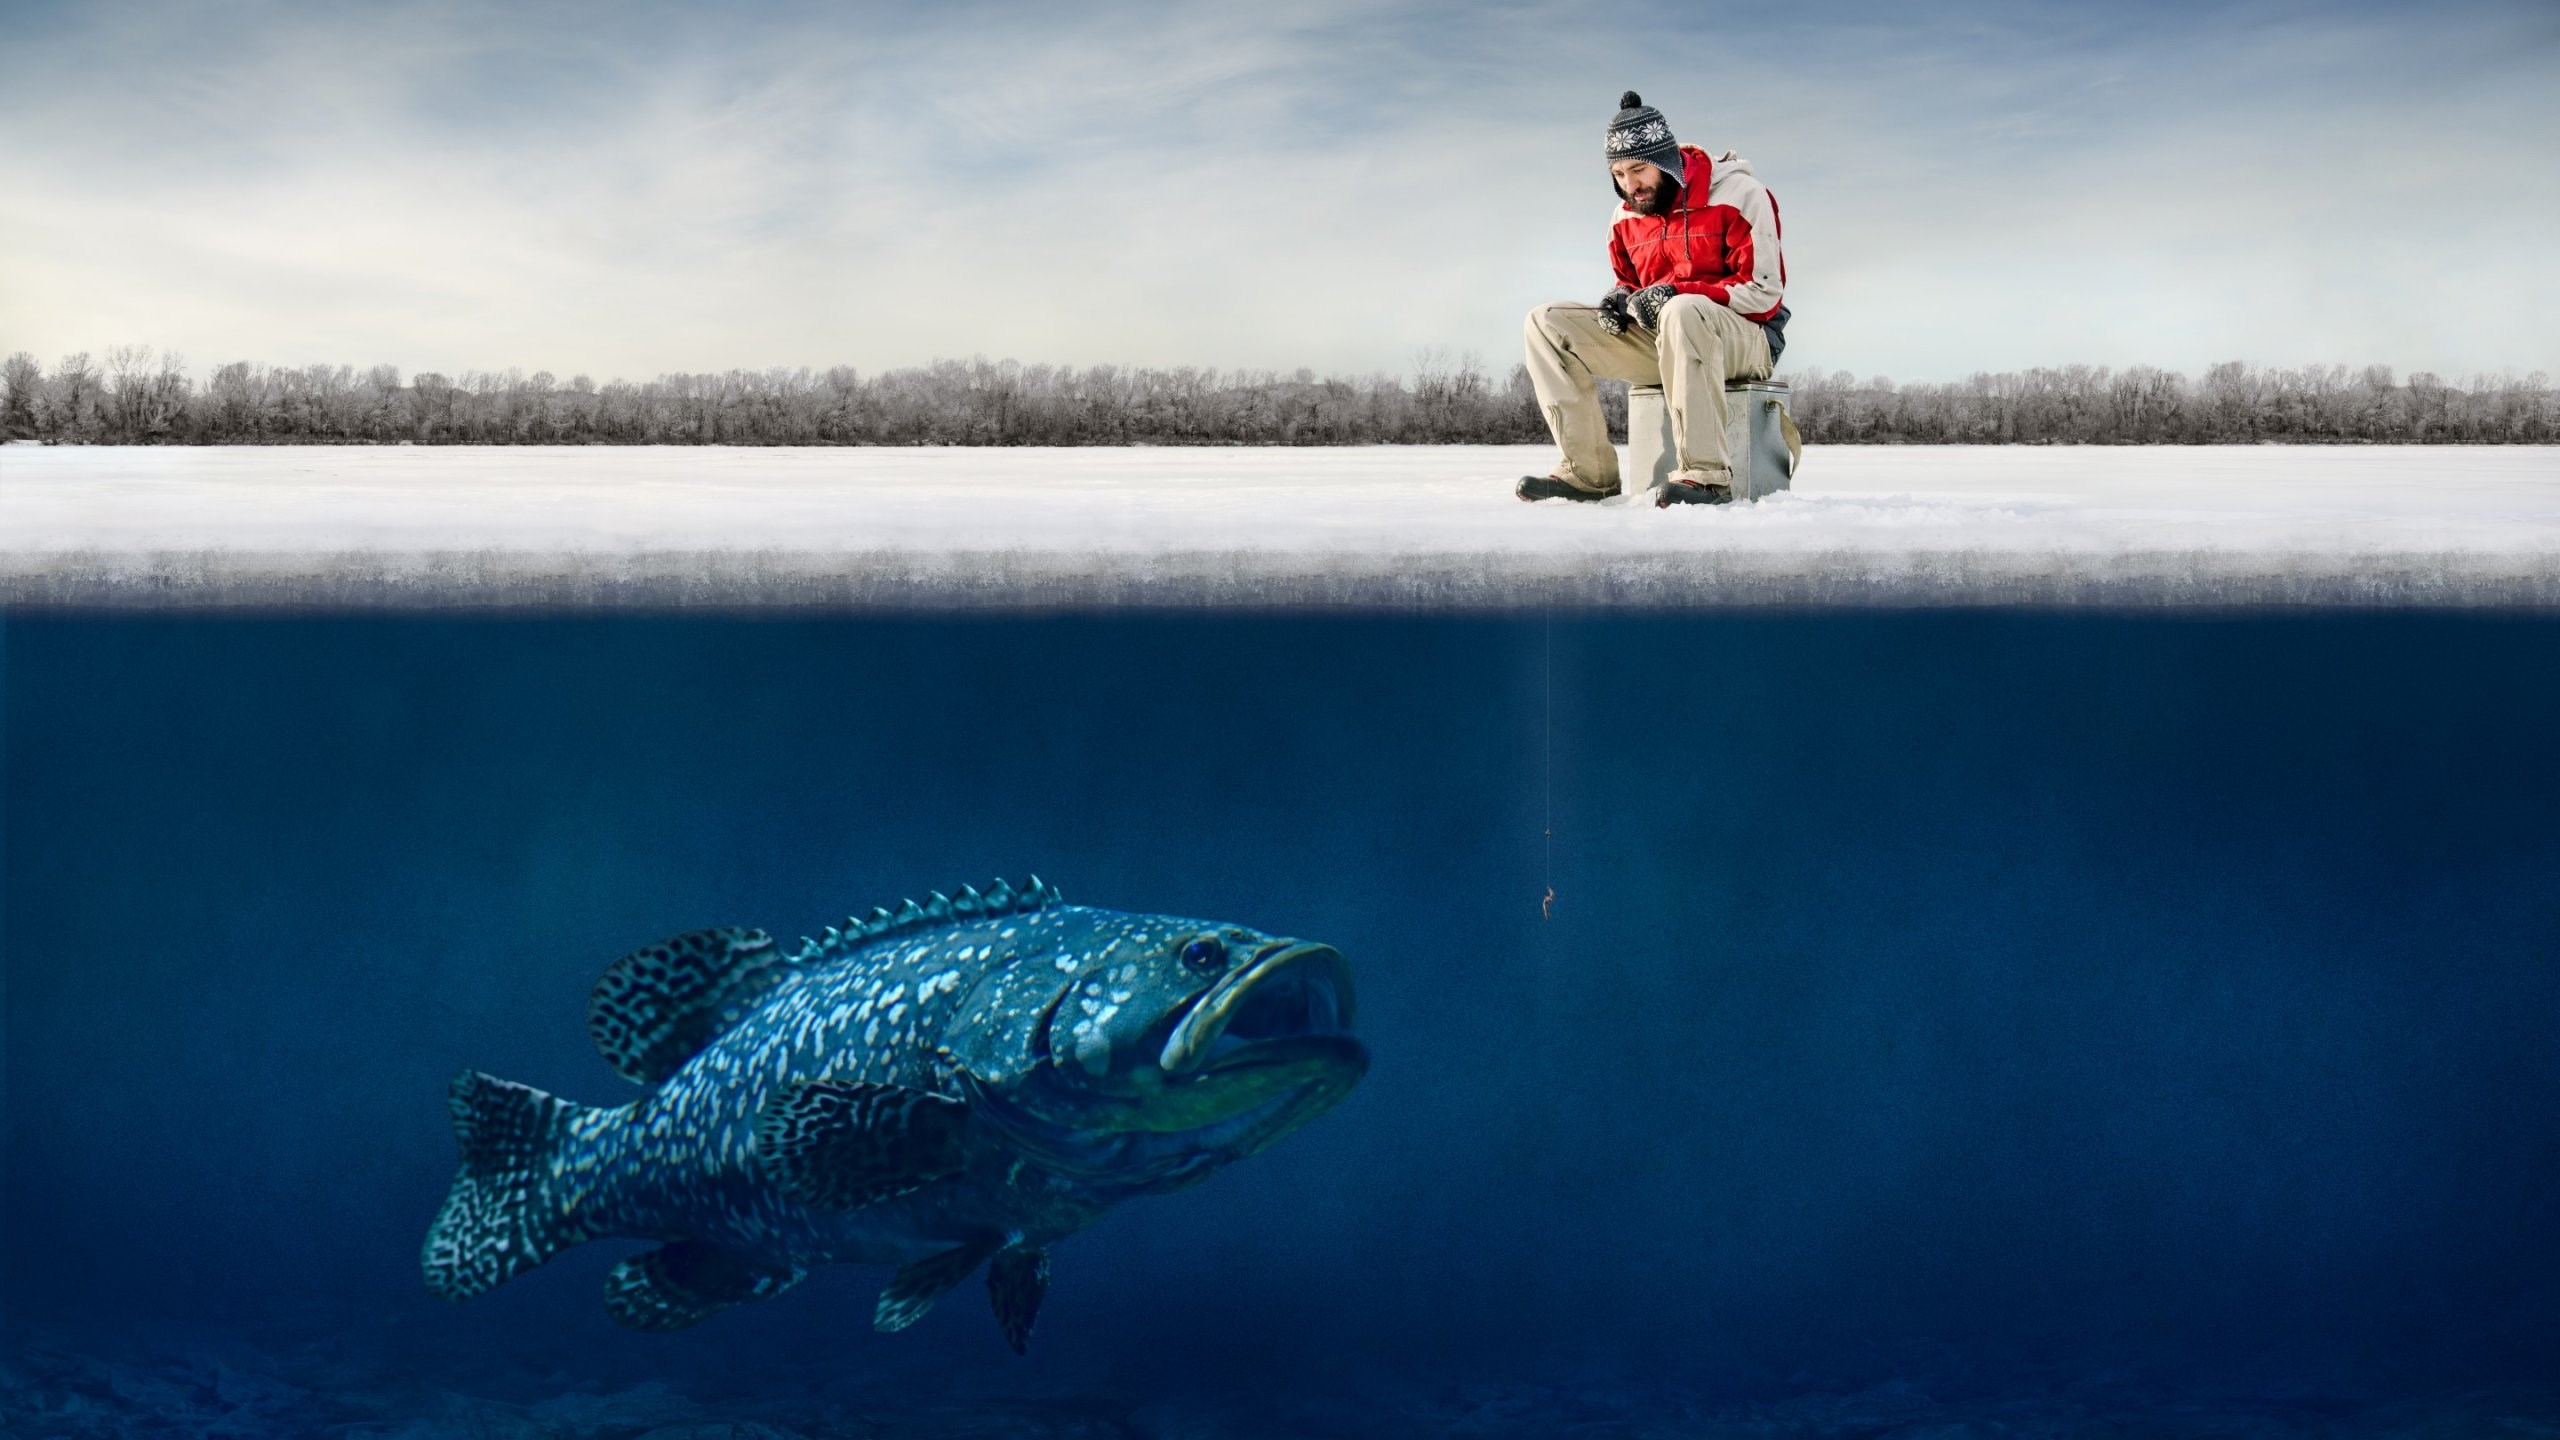 bass fishing background for desktop - wallpaper.wiki